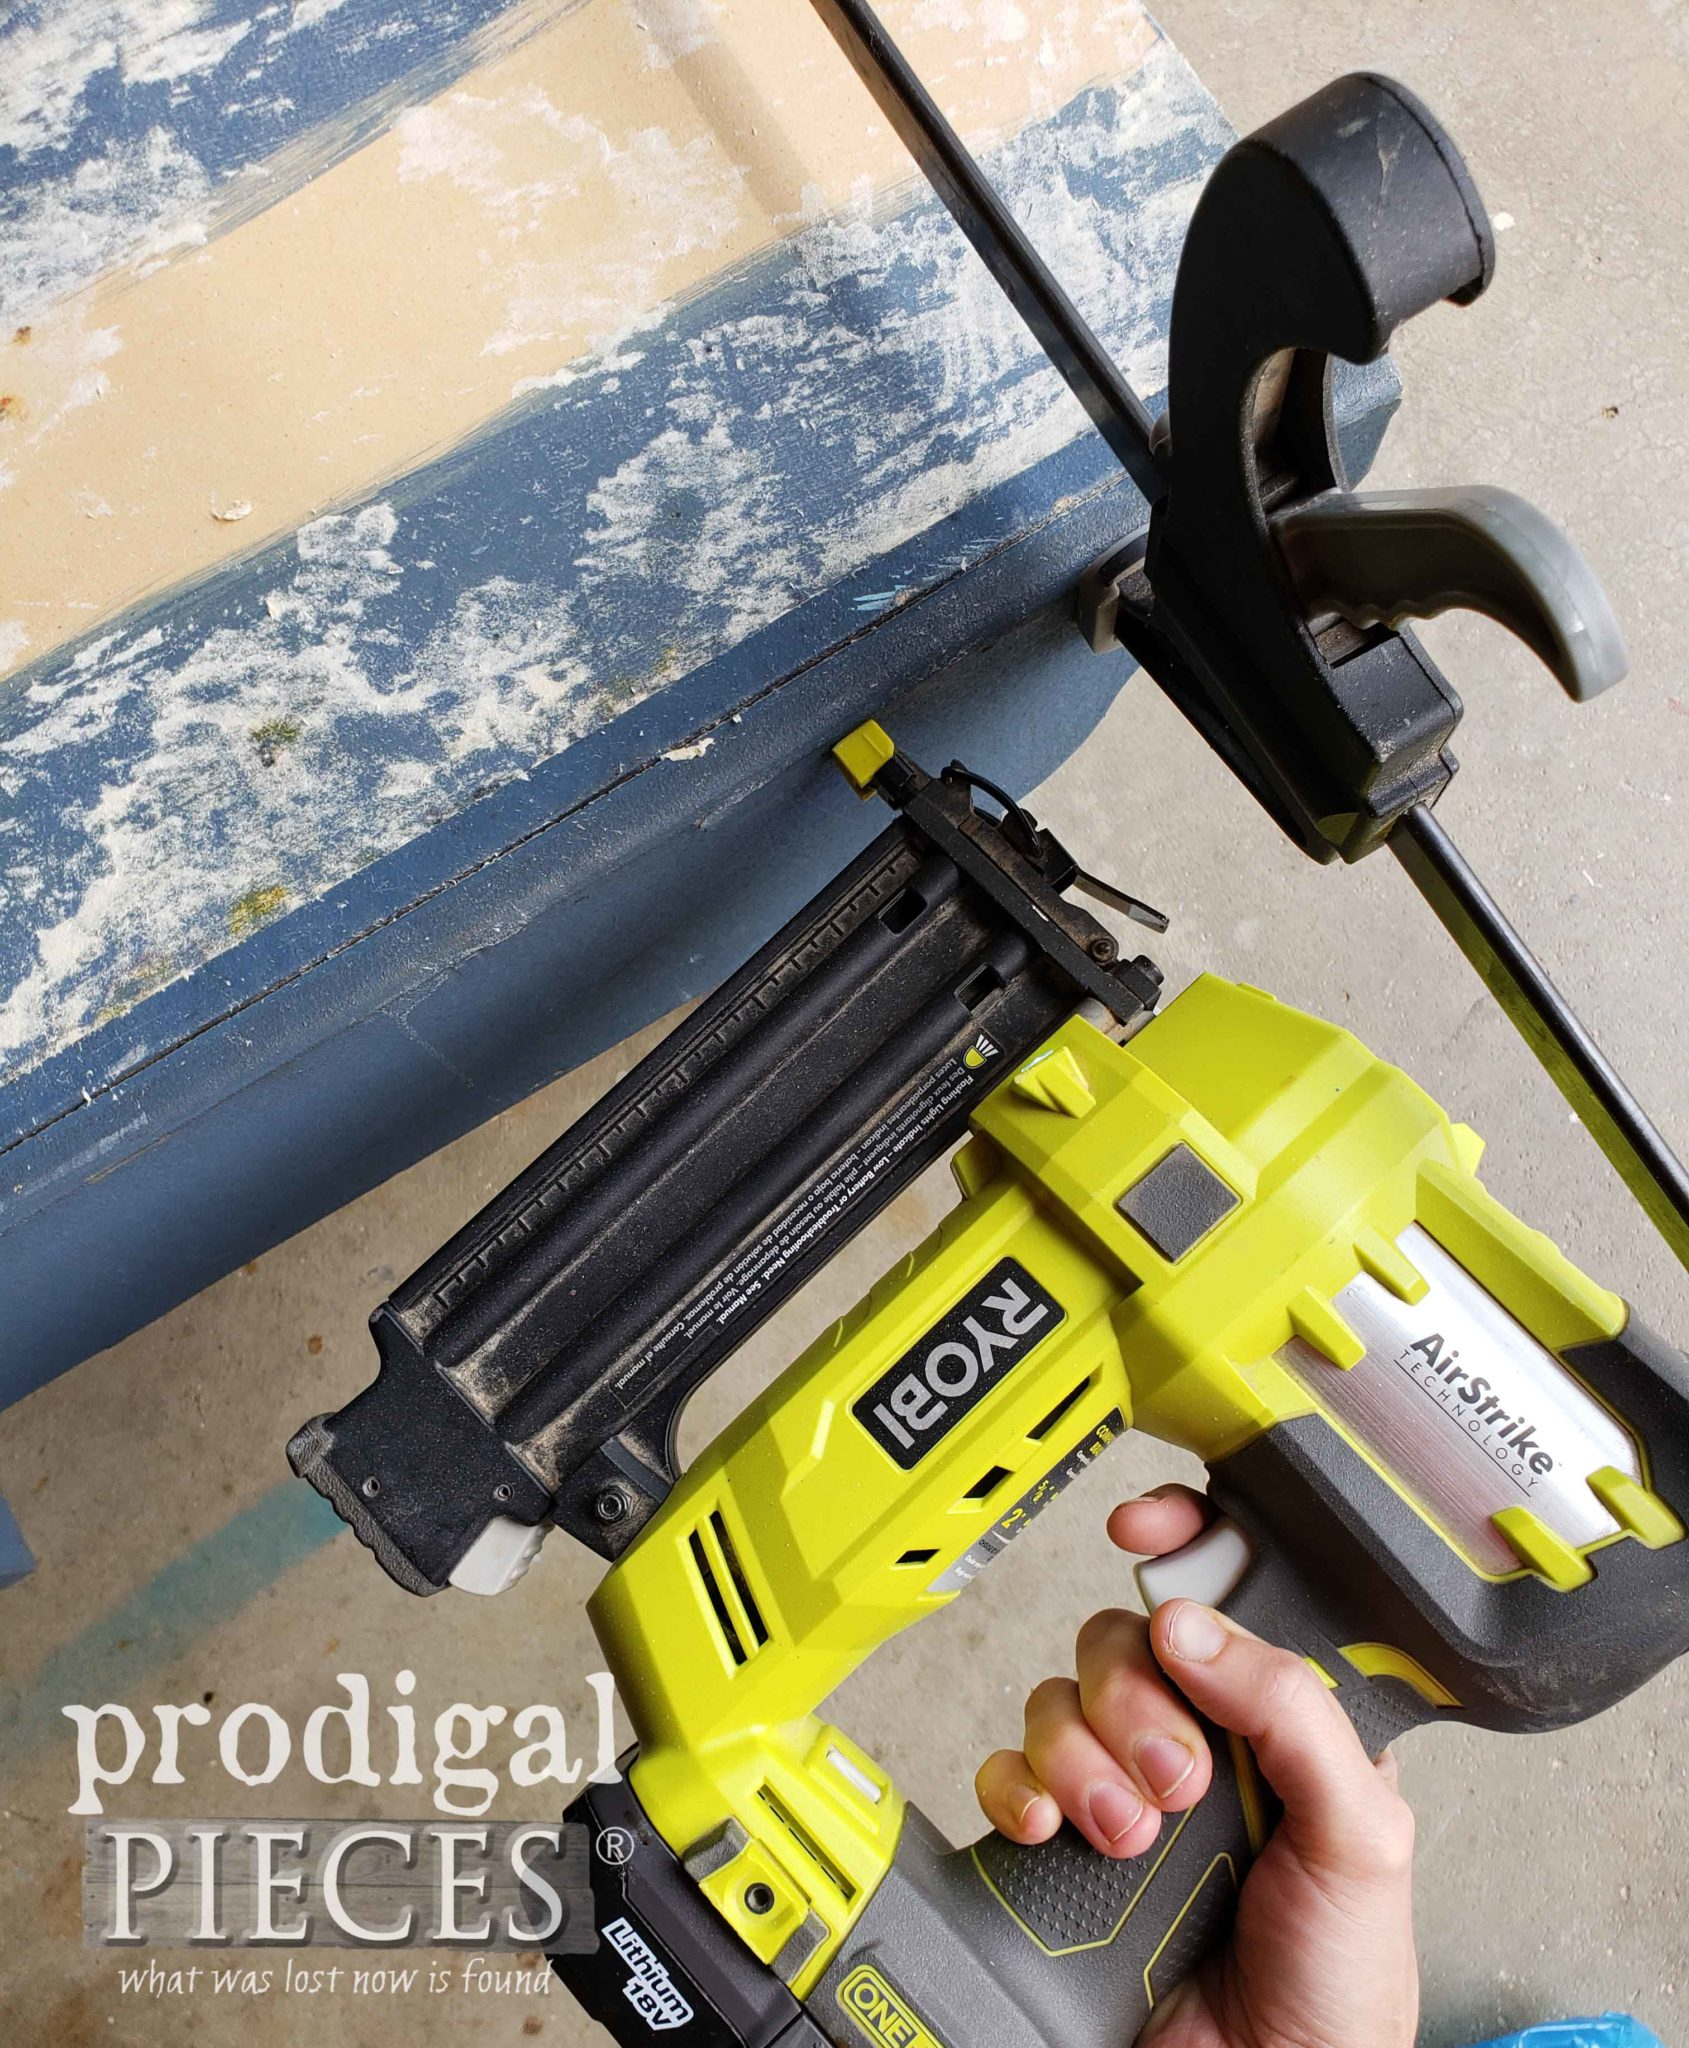 Using Ryobi Brad Nailer to Repair Benches | prodigalpieces.com